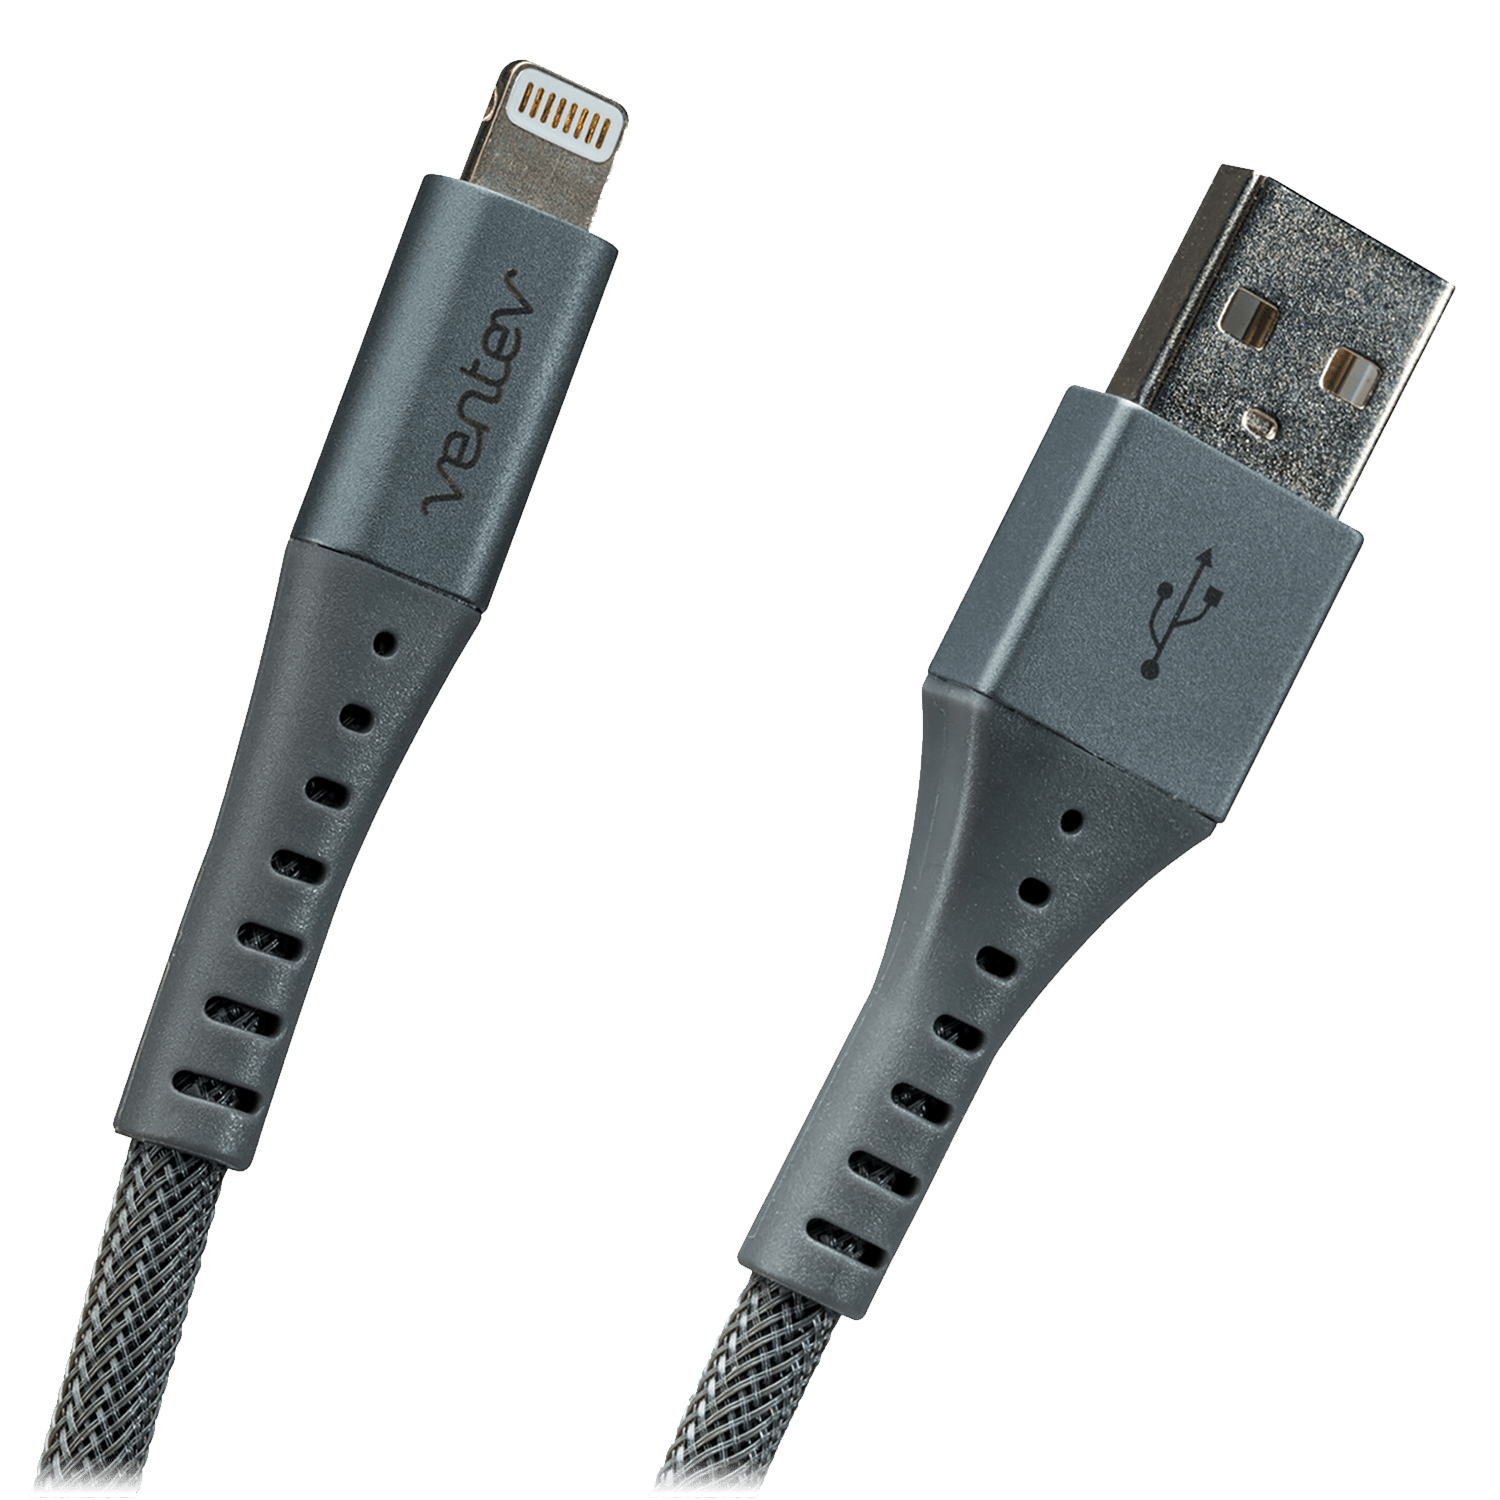 Wholesale cell phone accessory Ventev - chargesync alloy USB A to Apple Lightning Cable 10ft